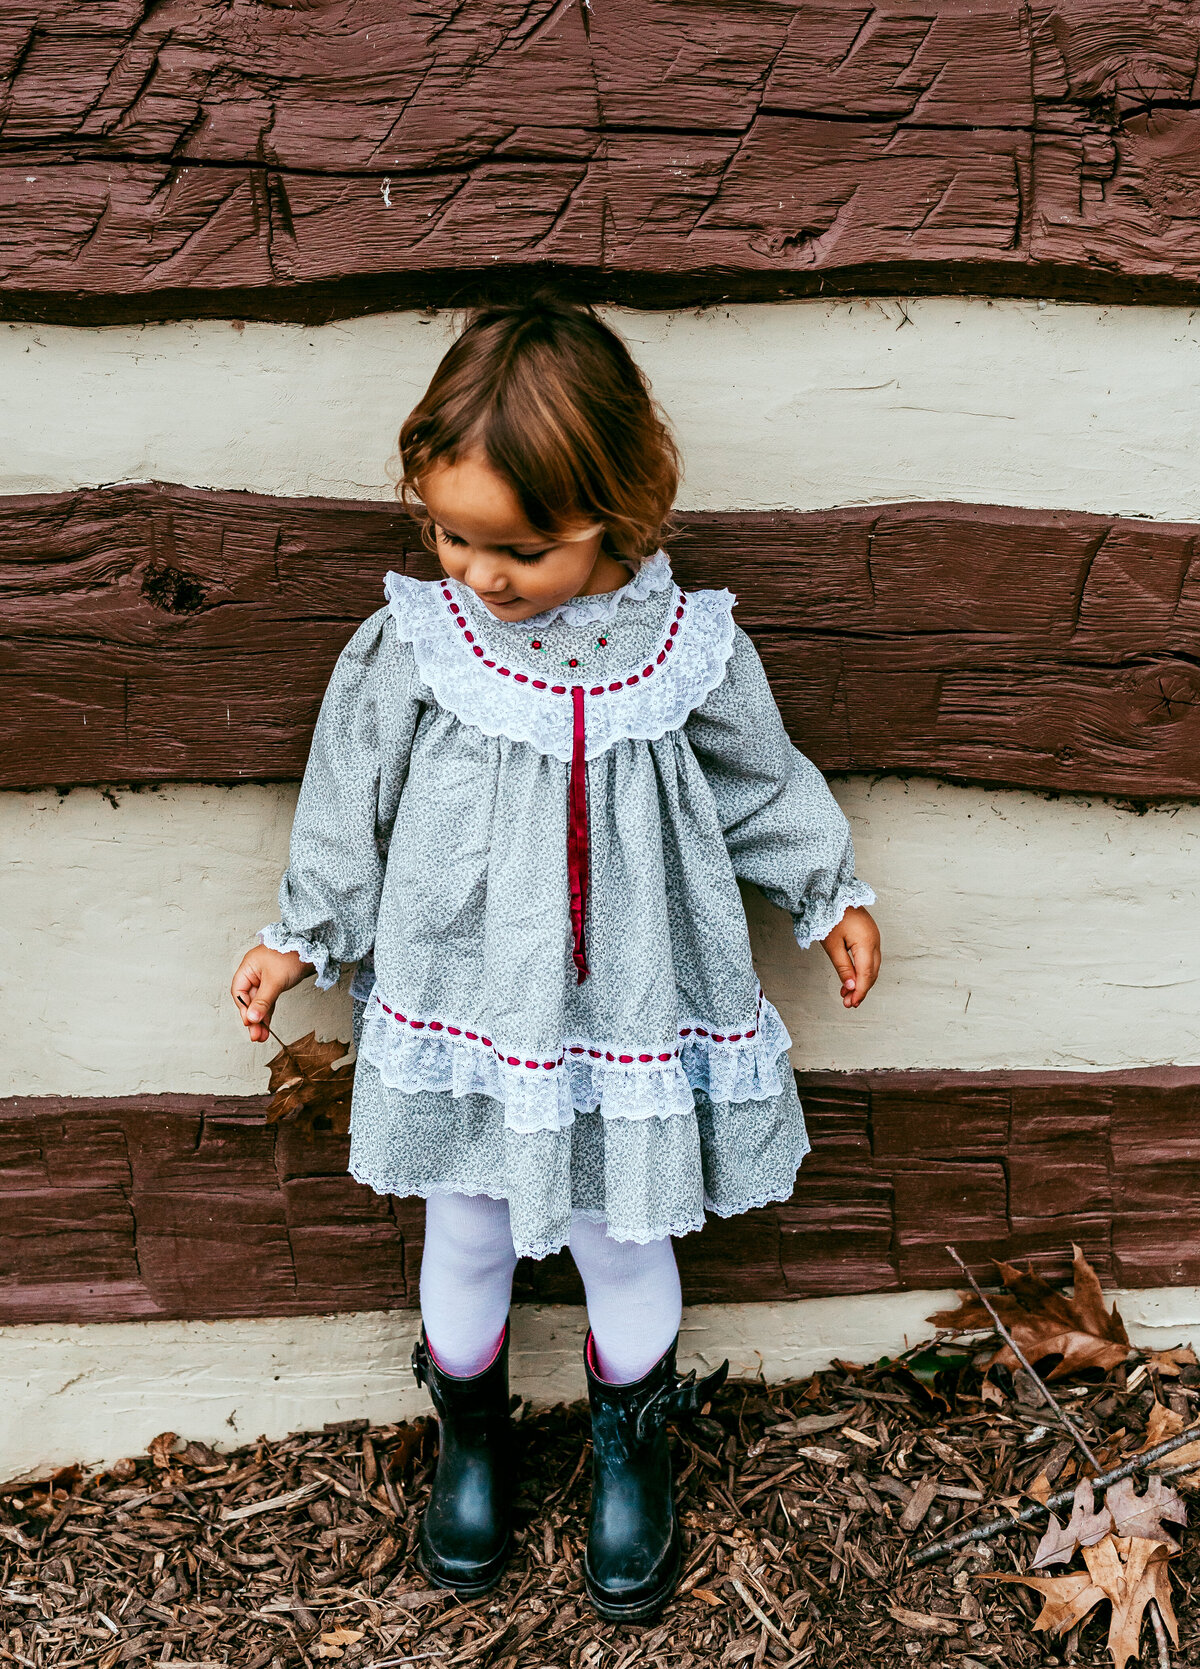 Little girl in front of log cabin